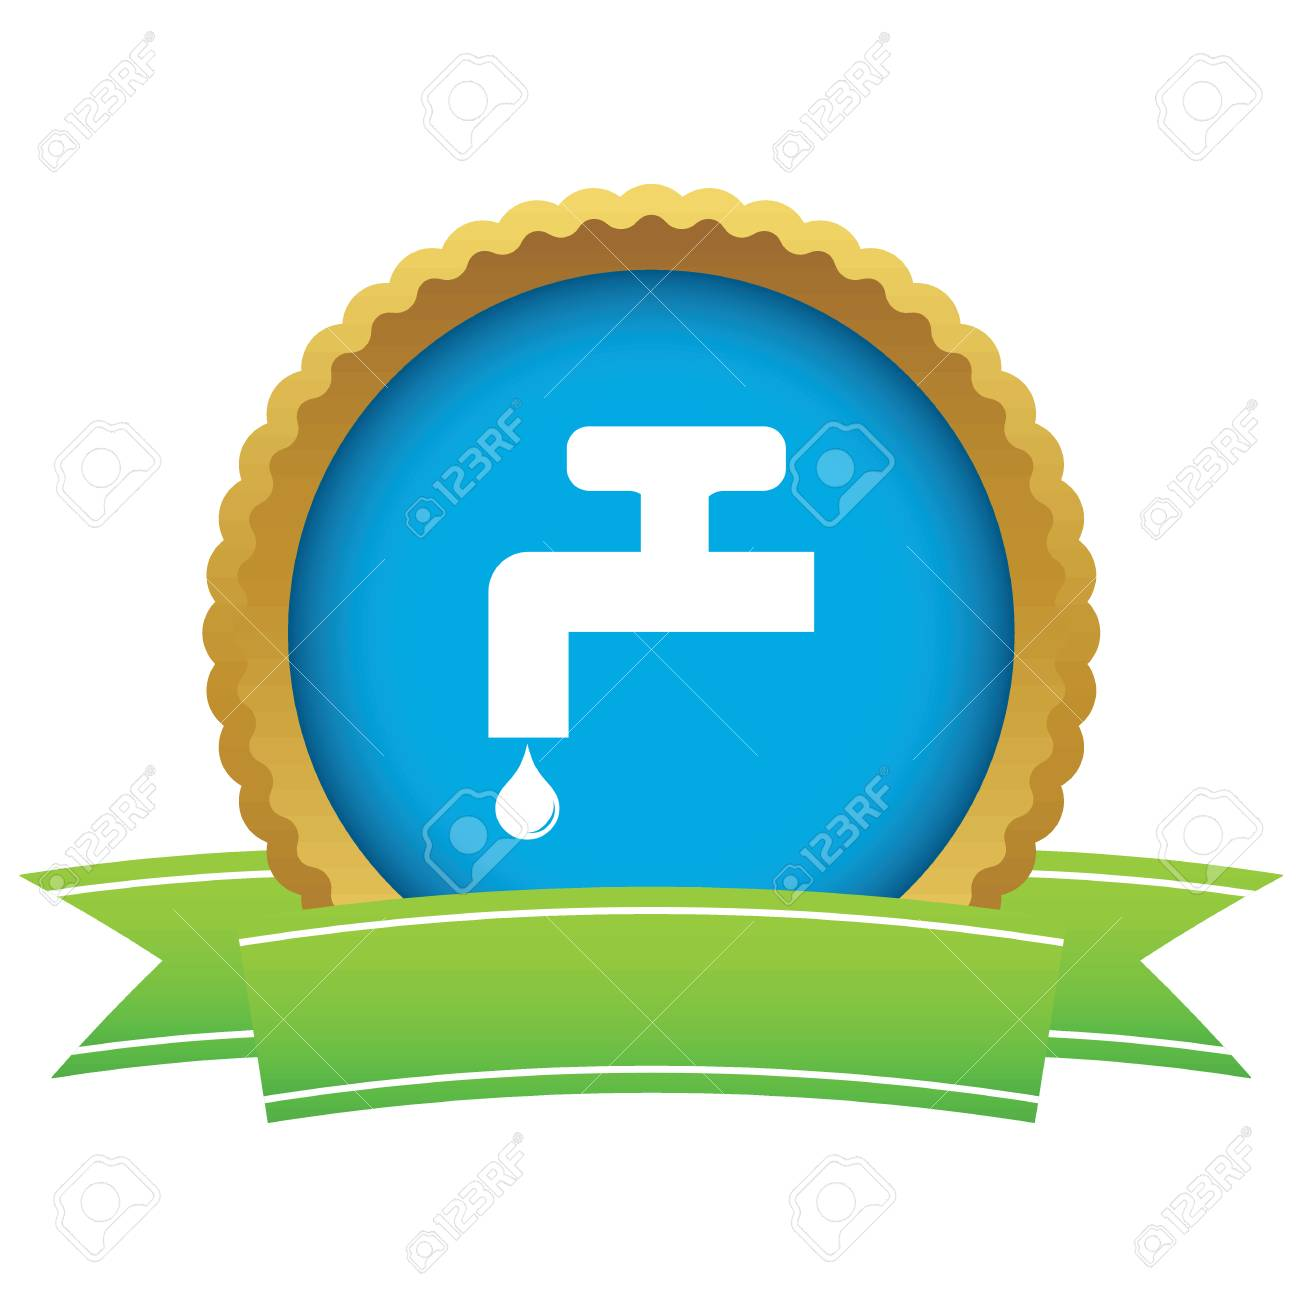 Certificate Seal With Image Of Tap And Water Drop Isolated On